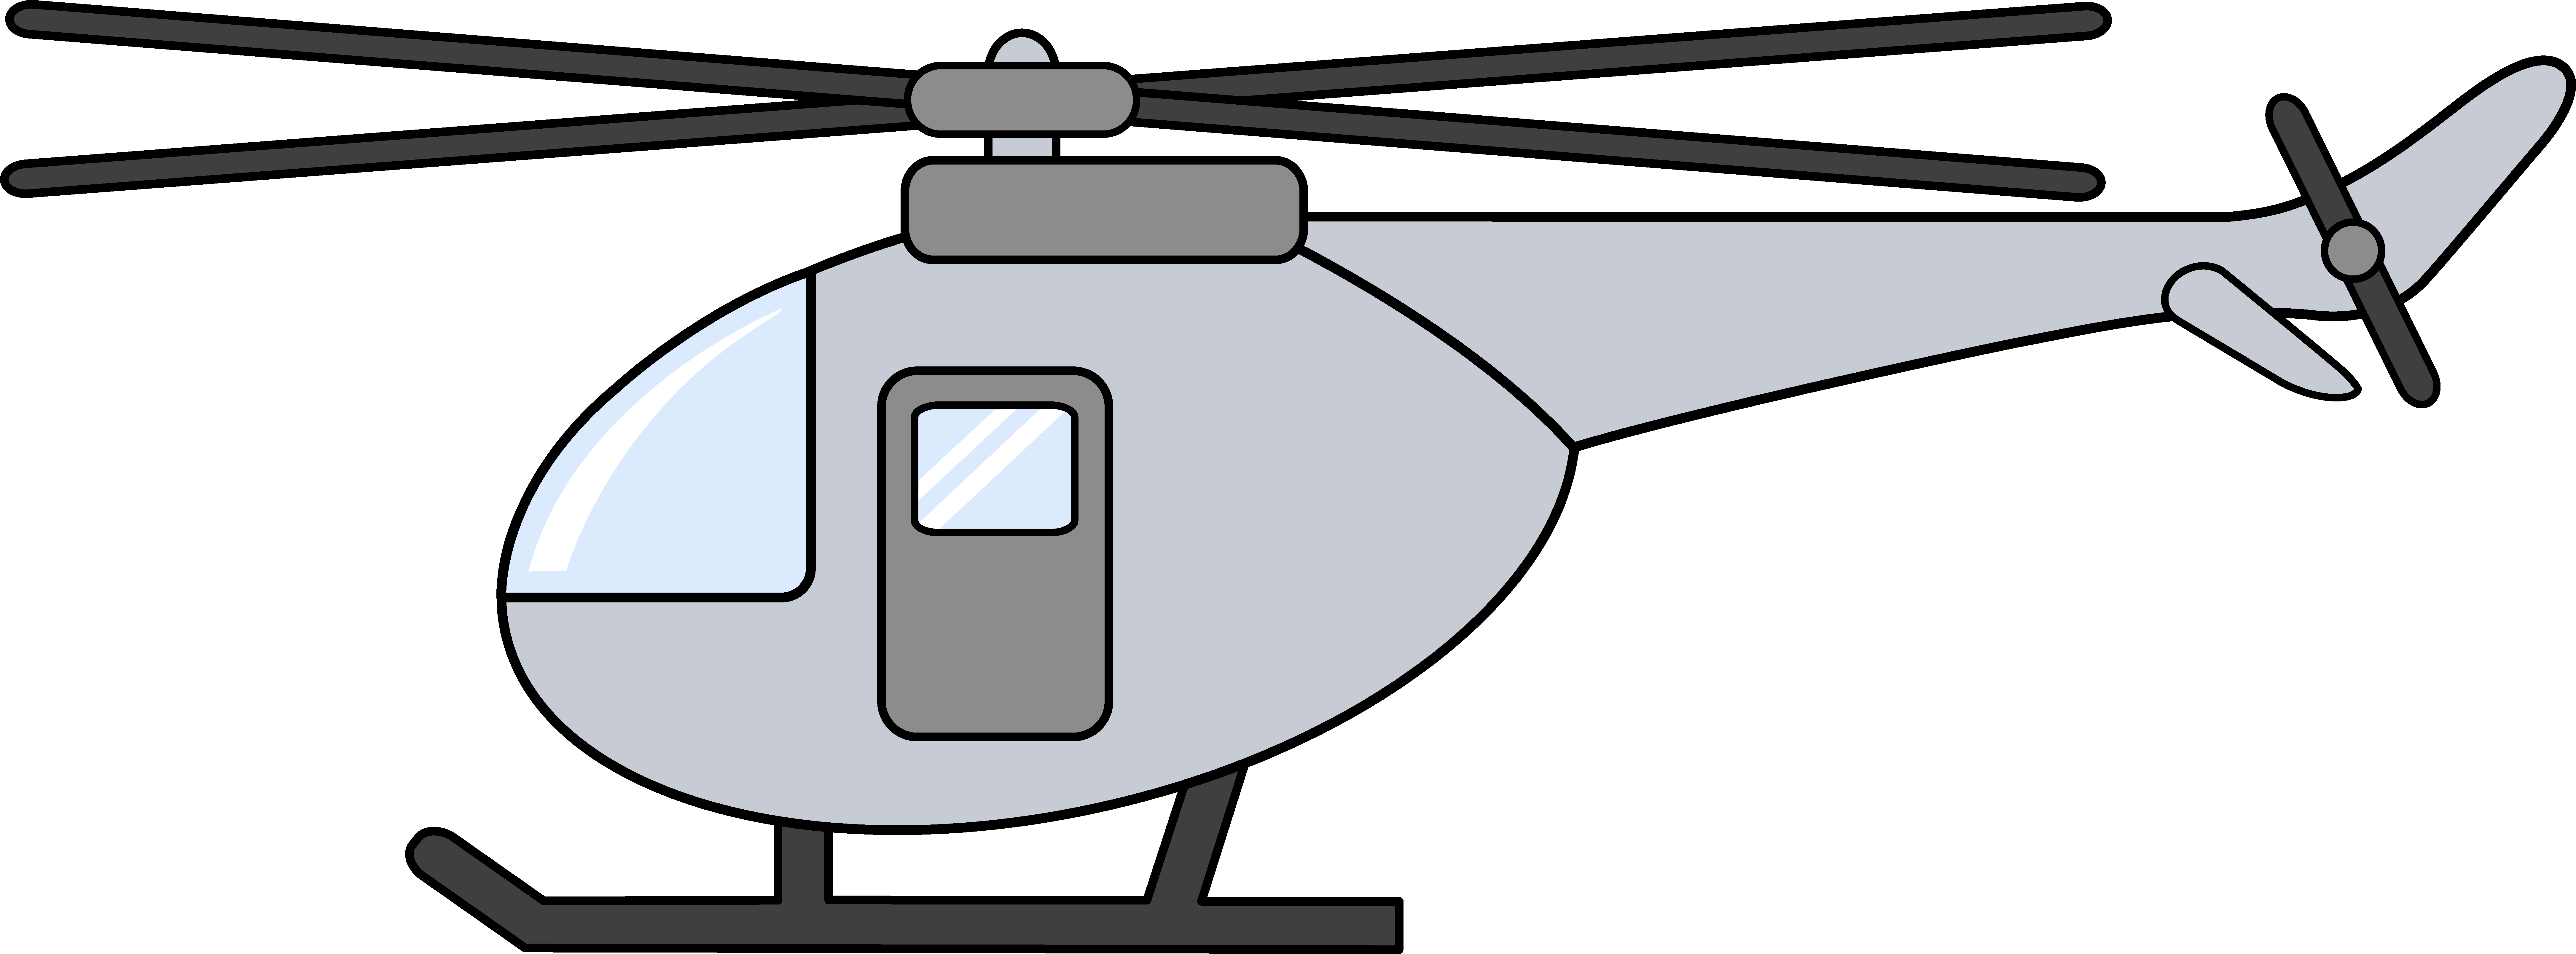 helicopter clipart clipground clip art helicopter landing clip art helicopters black and white